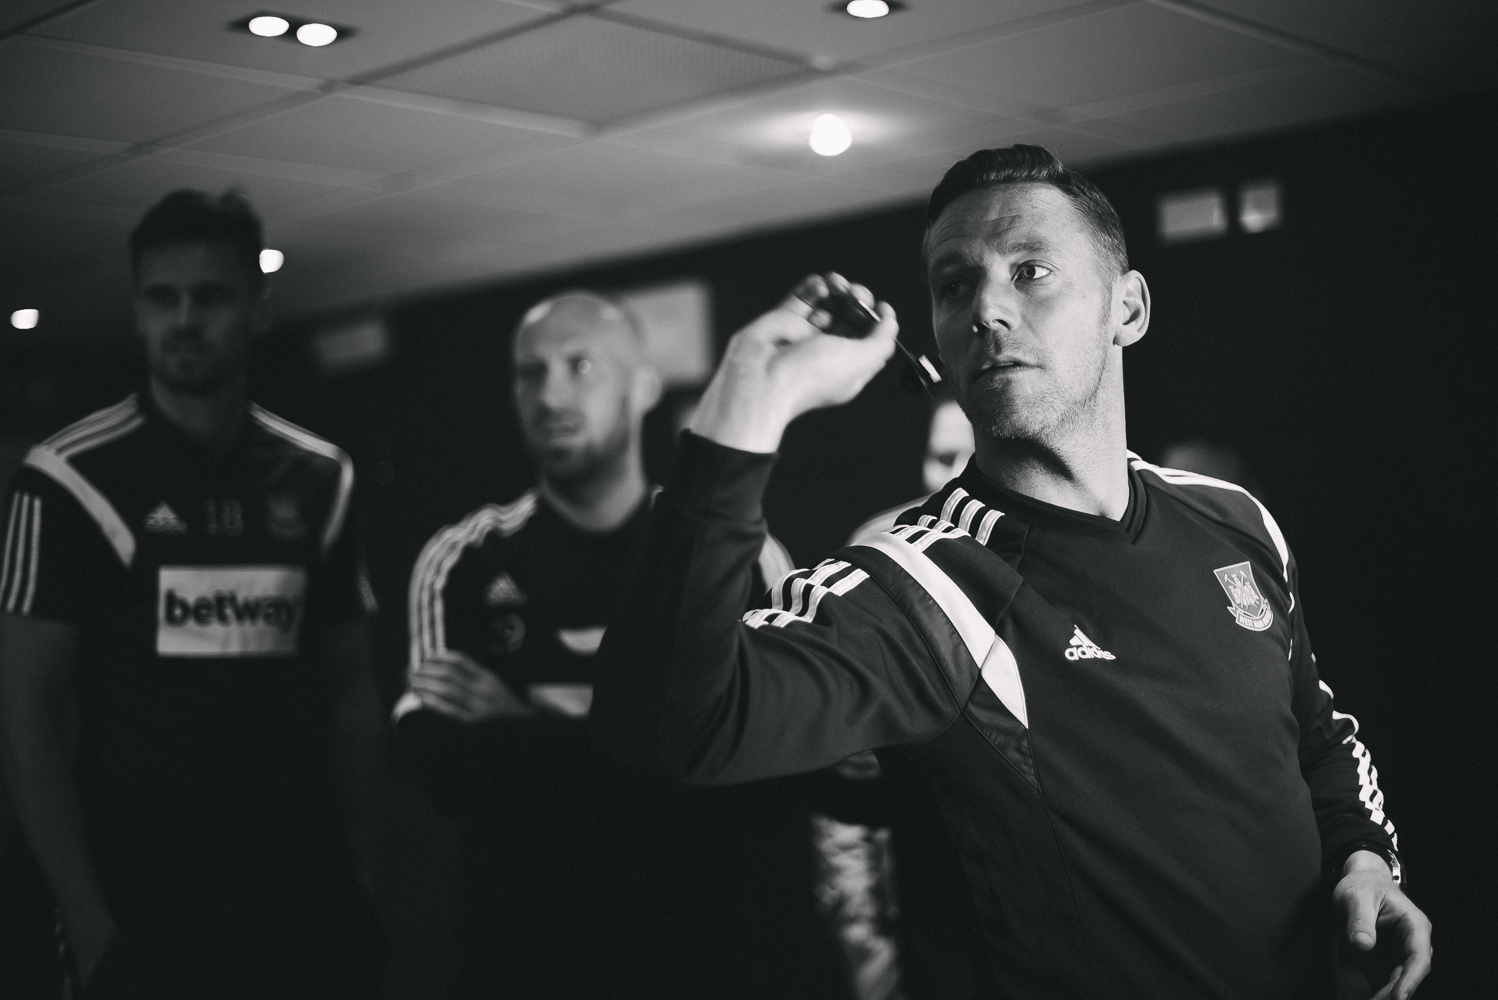 Betway_WestHam_Alex_Wallace_Photography_0143.jpg